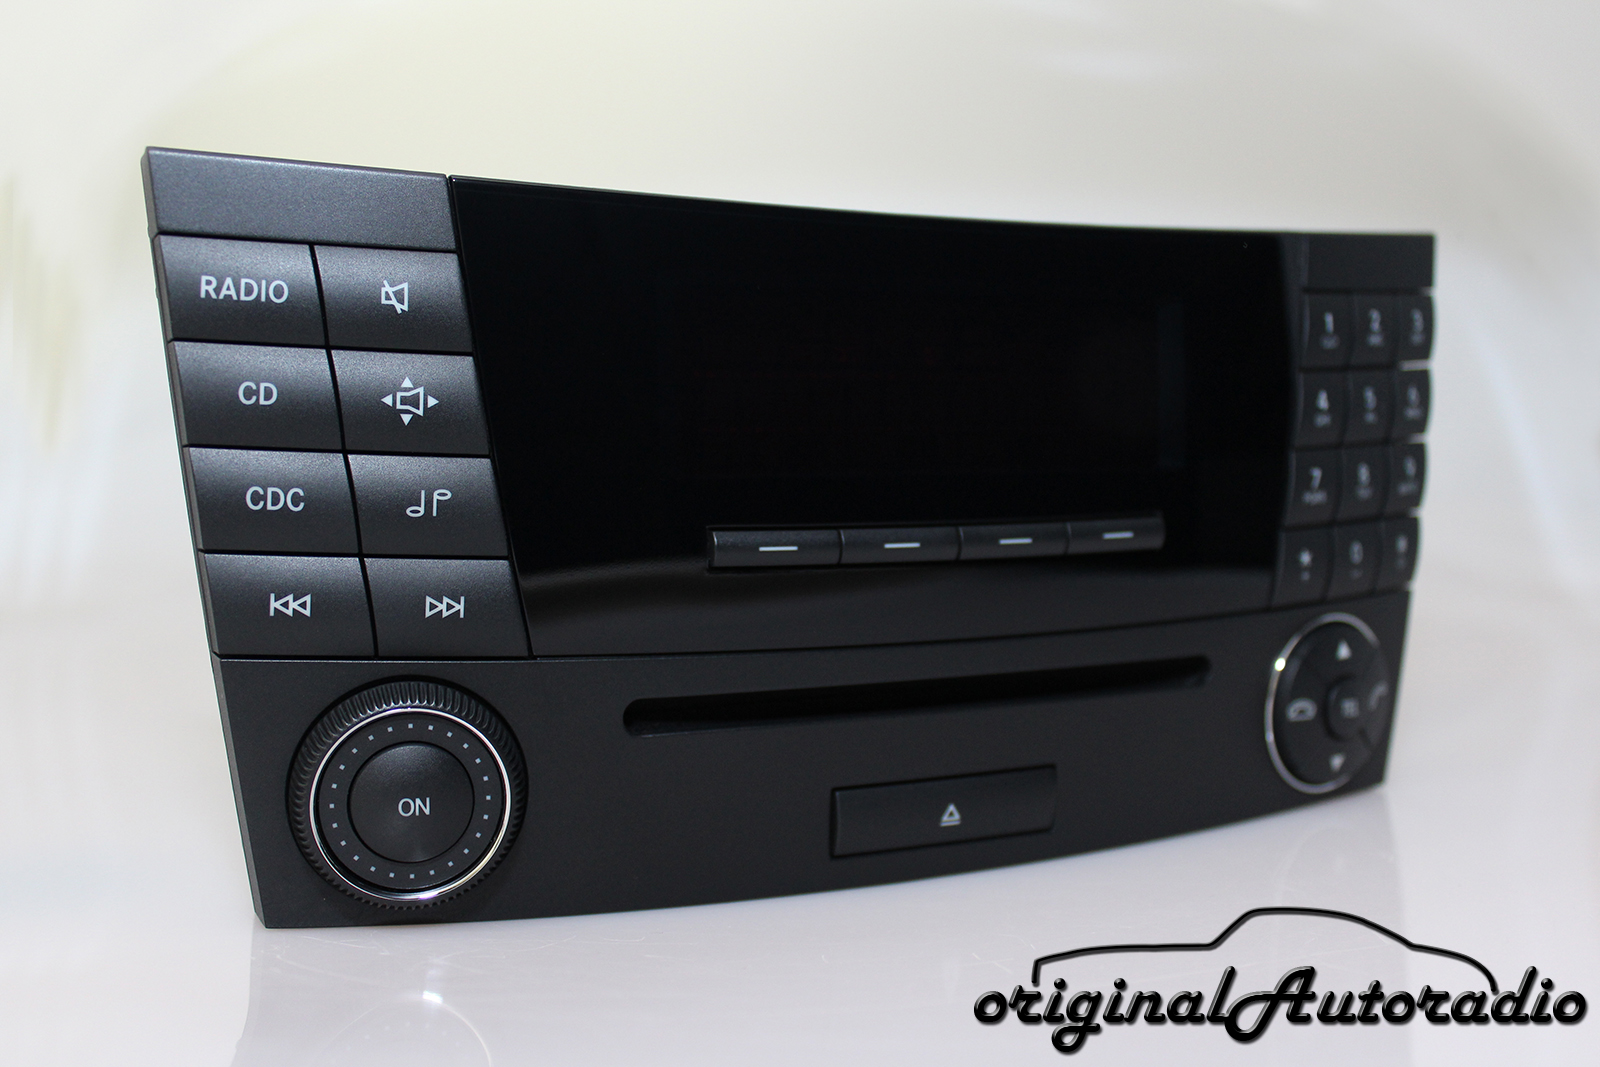 Uitgelezene Original-Autoradio.de - Mercedes Audio 20 CD MF2770 W211 S211 E IT-01